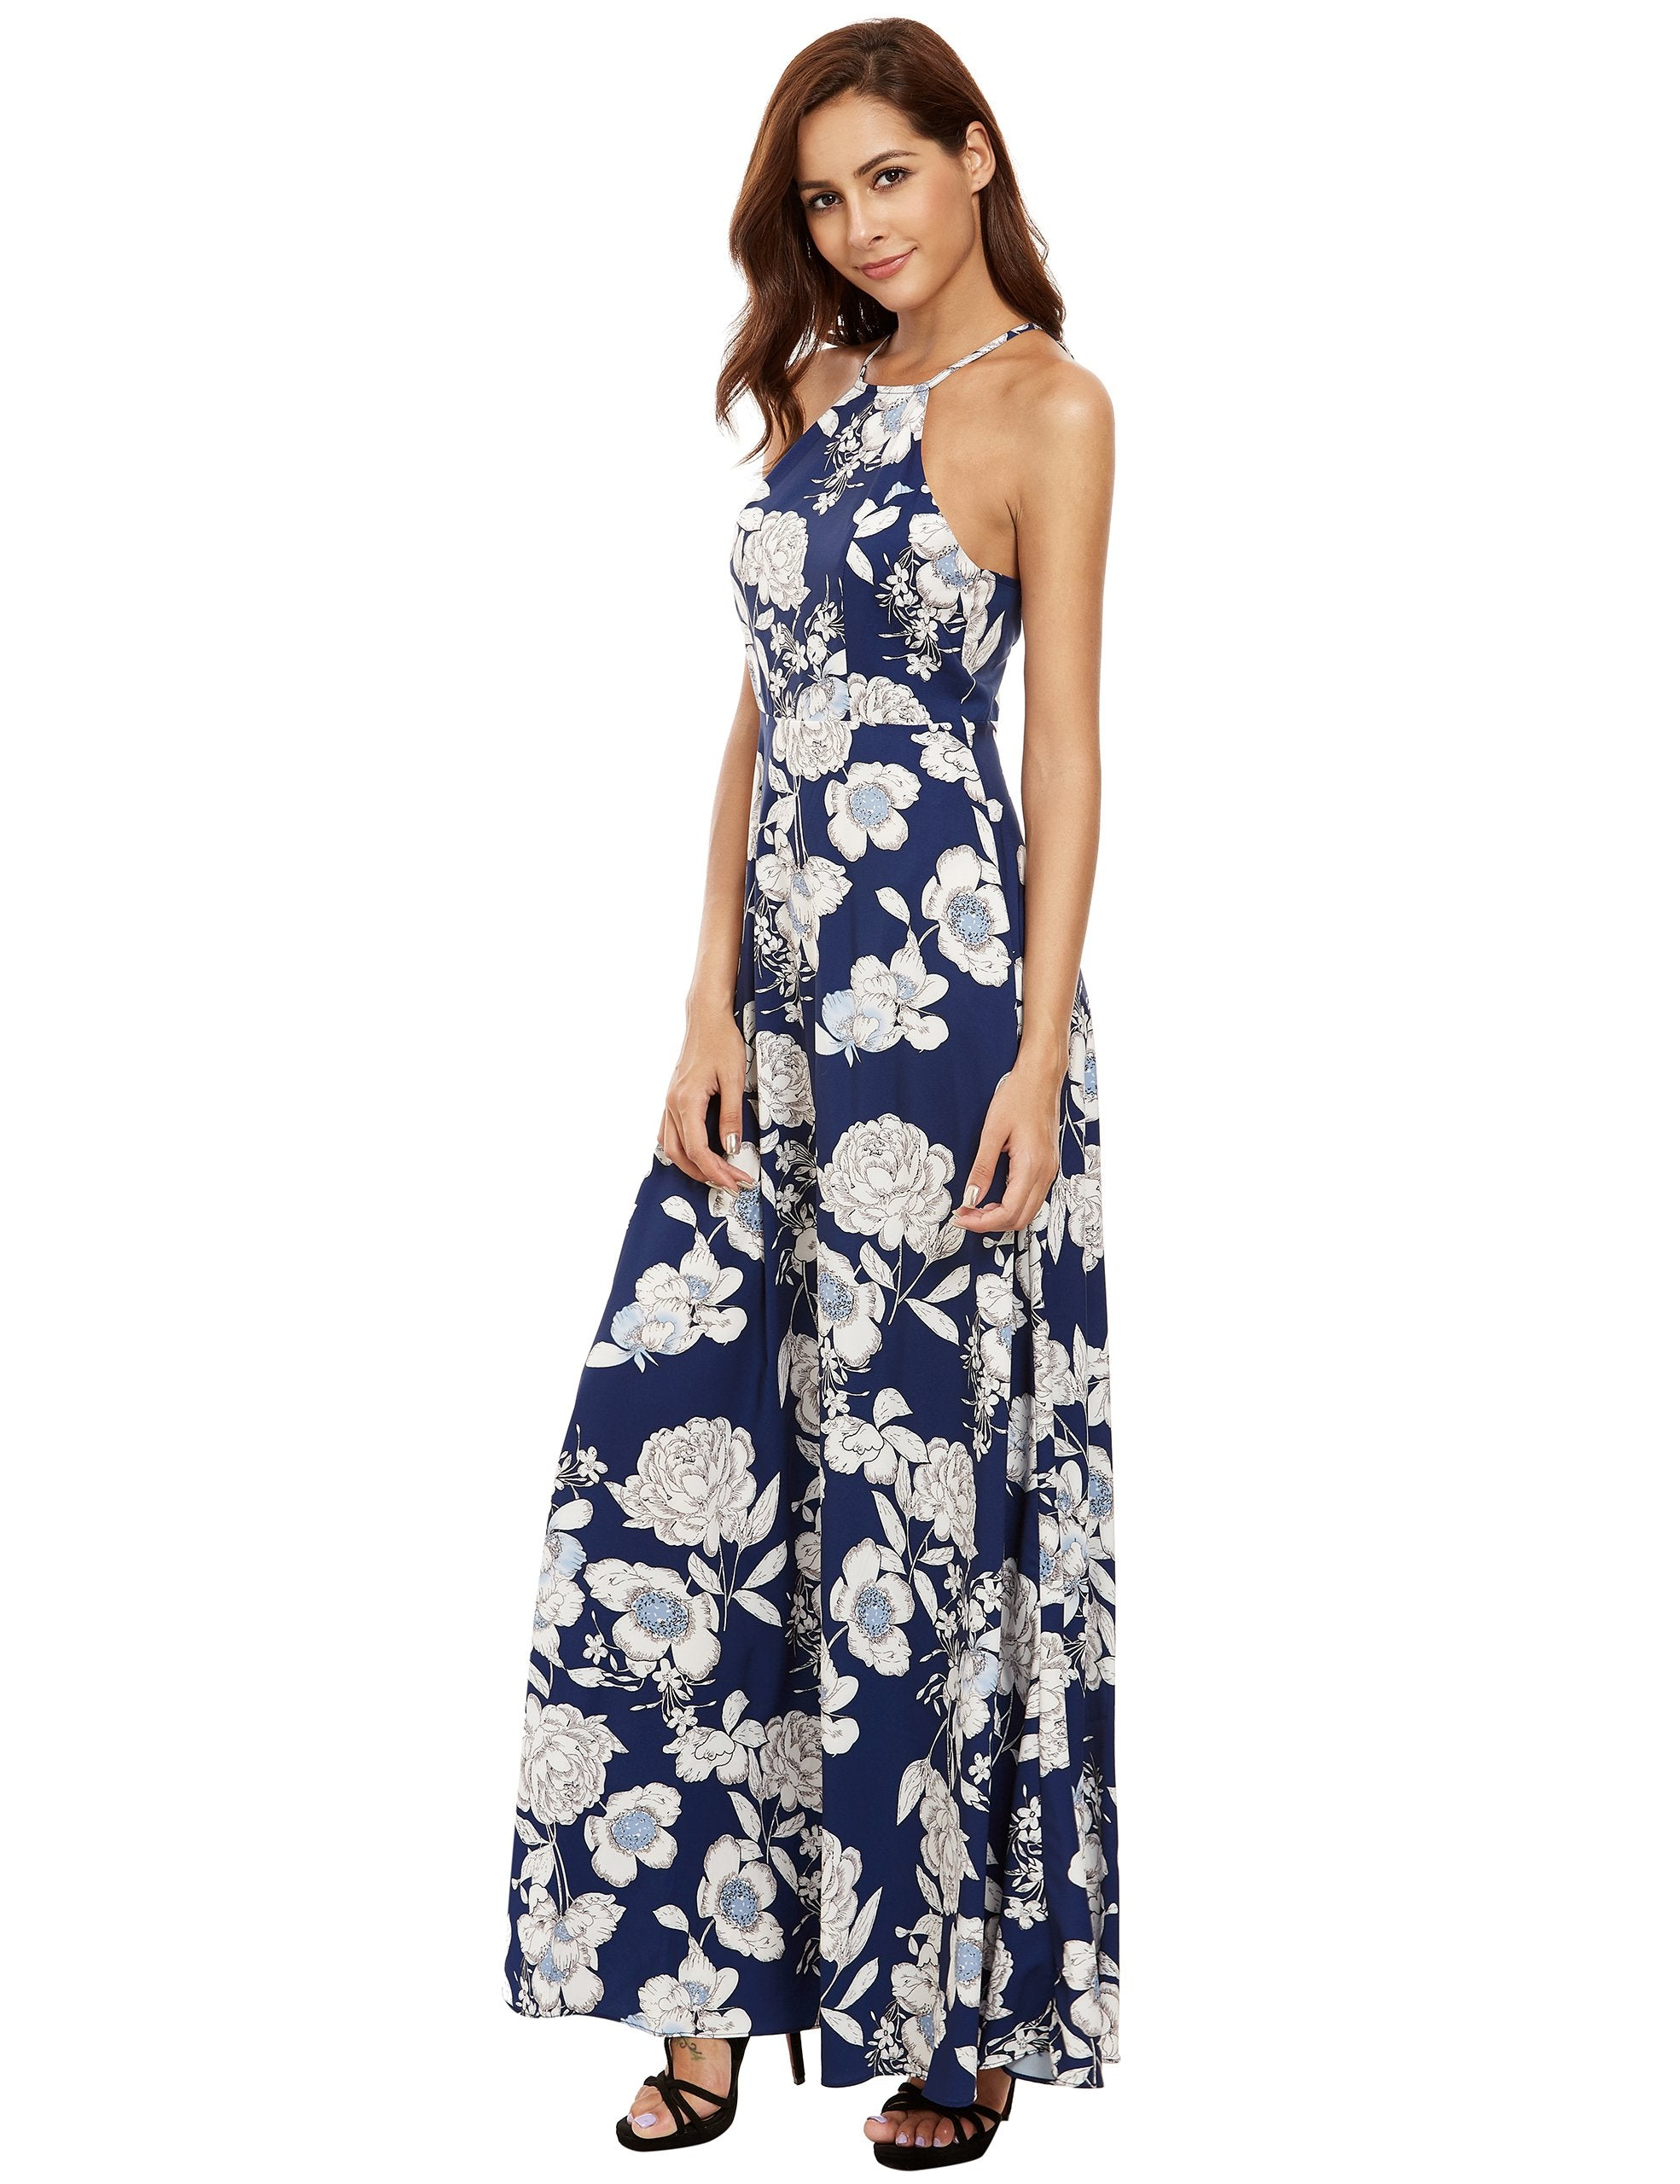 Floerns Women's Sleeveless Halter Neck Vintage Floral Print Maxi Dress - wiihuu